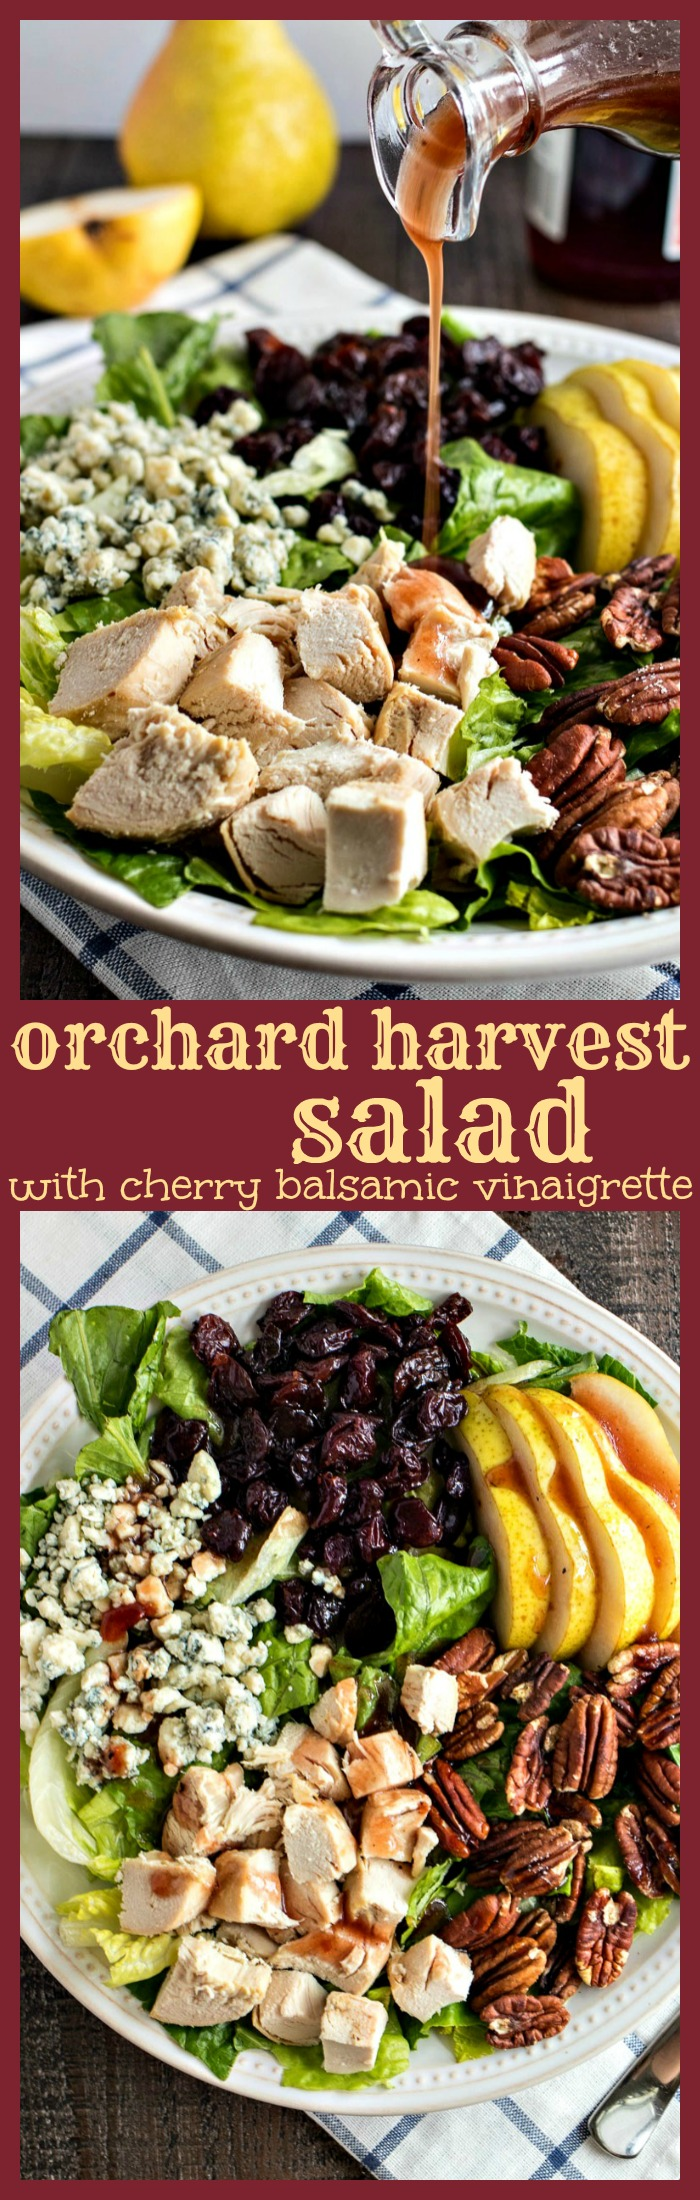 Orchard Harvest Salad  photo collage